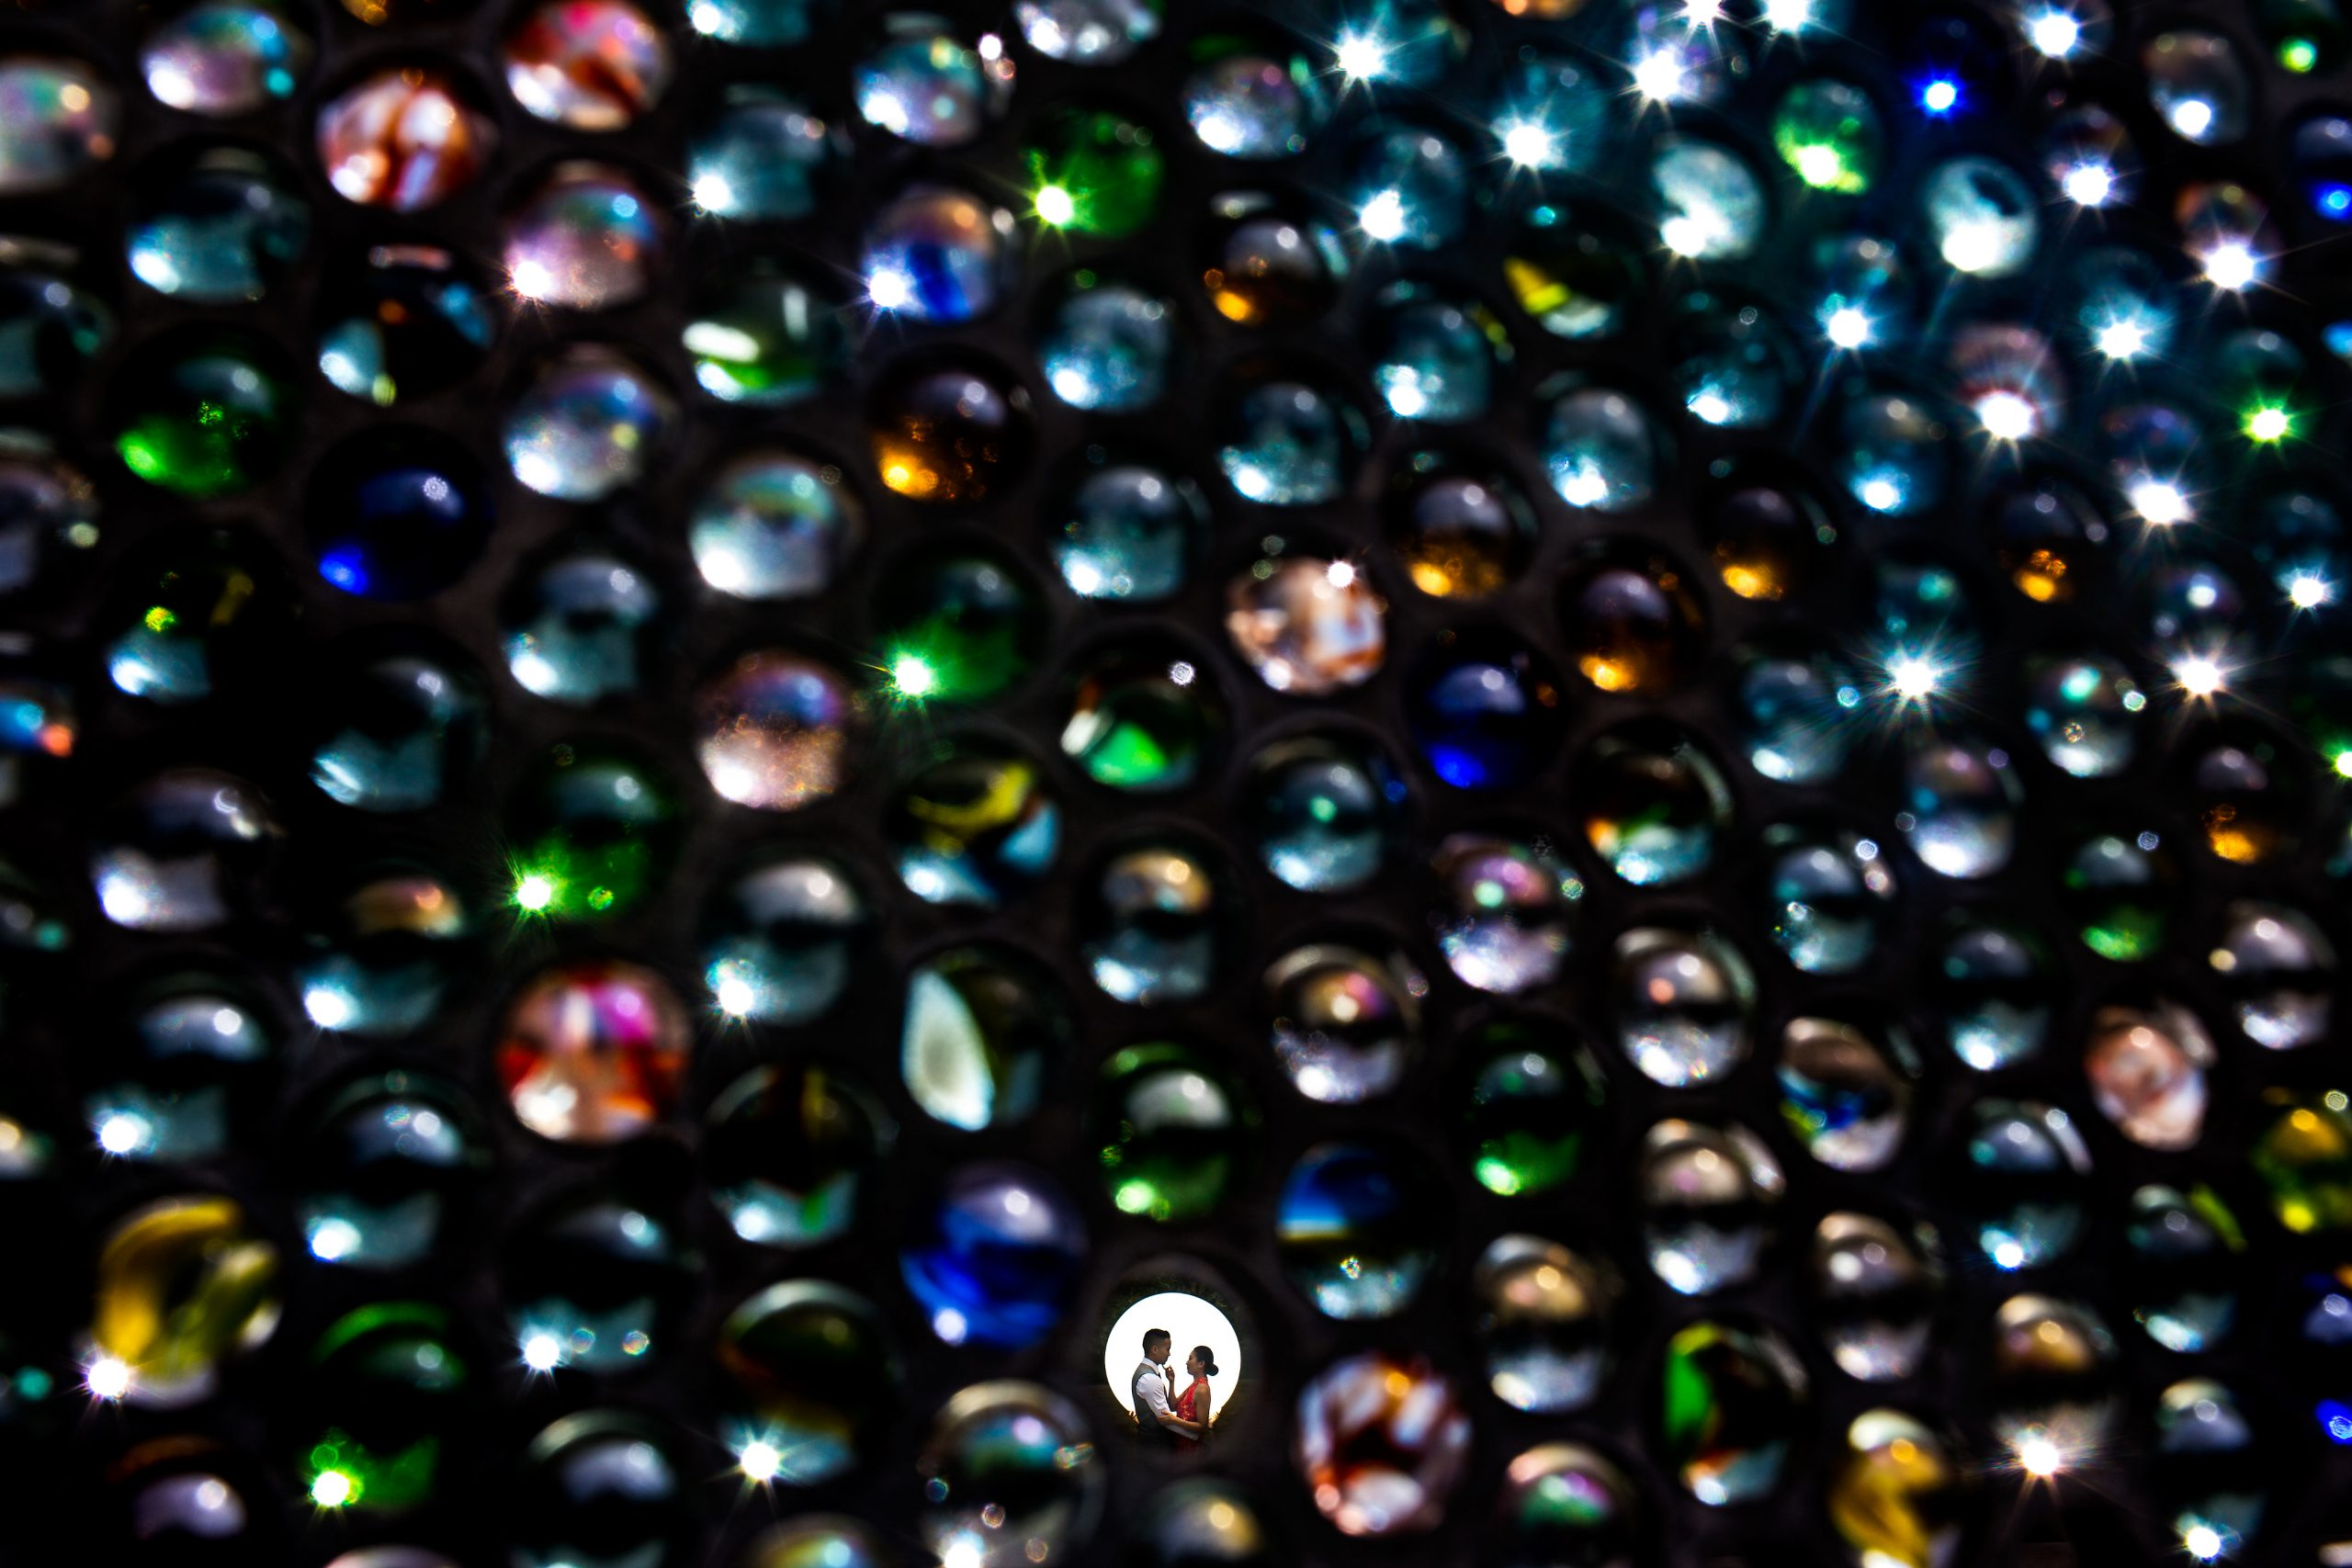 Man and woman looking into each other's eyes is seen through a gap in a wall of beads